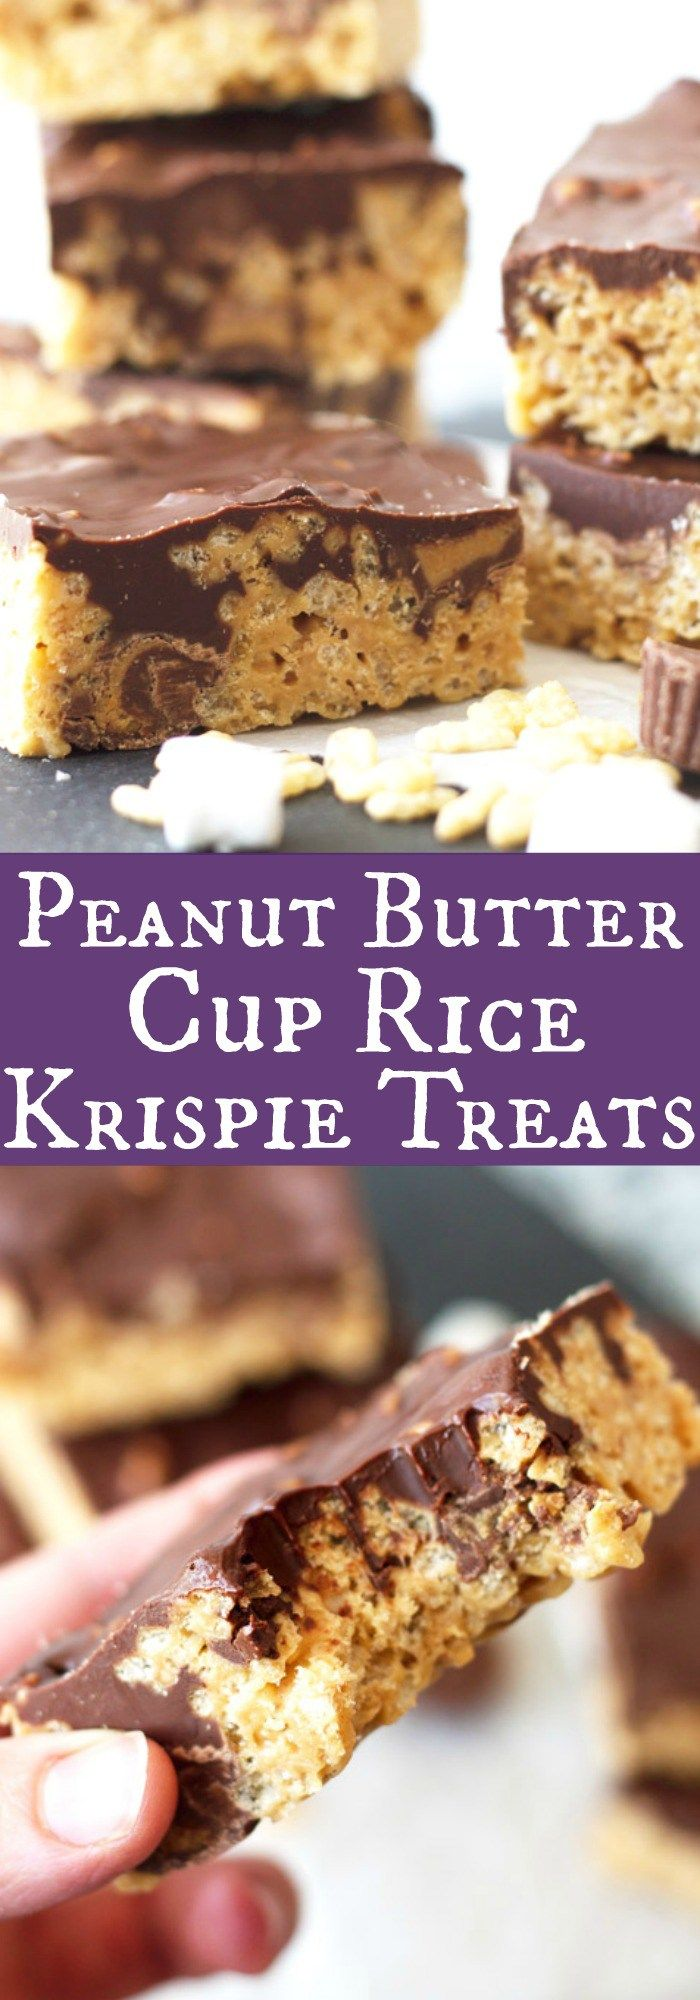 ... krispie treats chocolate peanut butter cup layered krispie treats